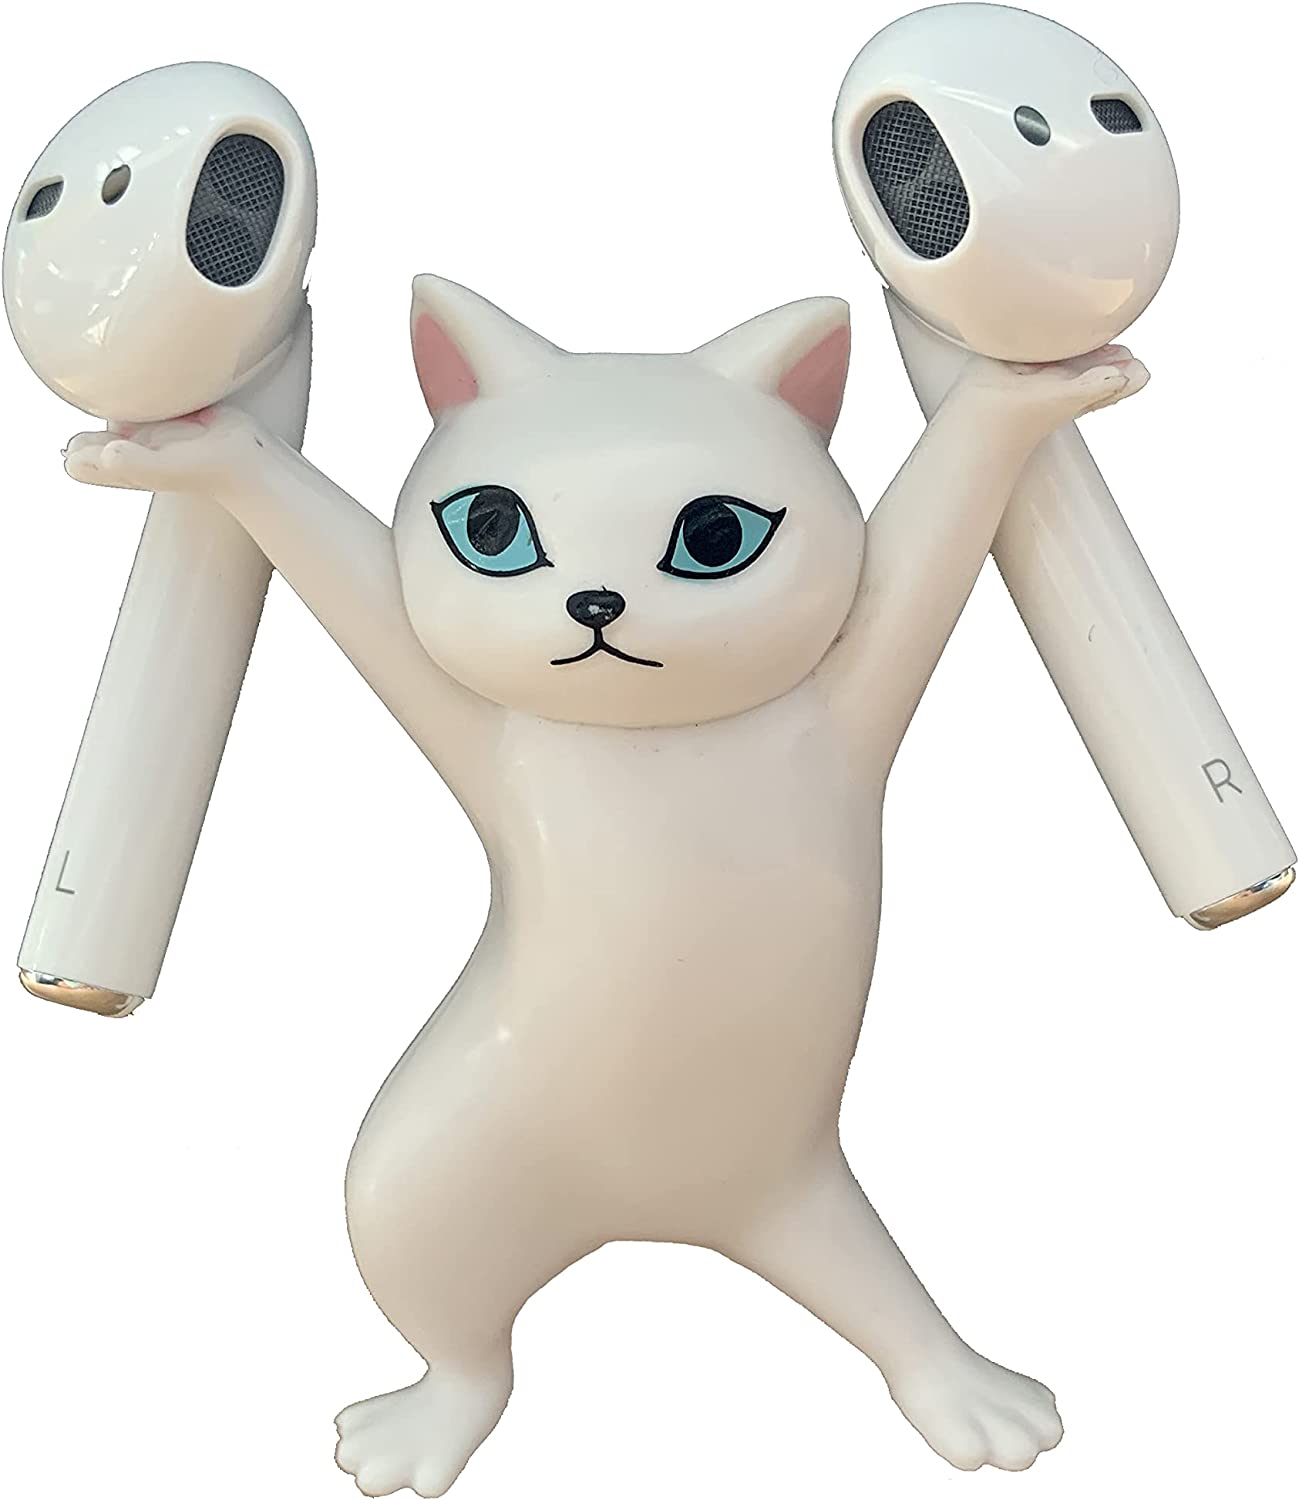 Cute Cat Headphone Stand Wireless Headset Holder Accessories Novelty Gifts for Apple AirPods 1&2 and Pro (White)